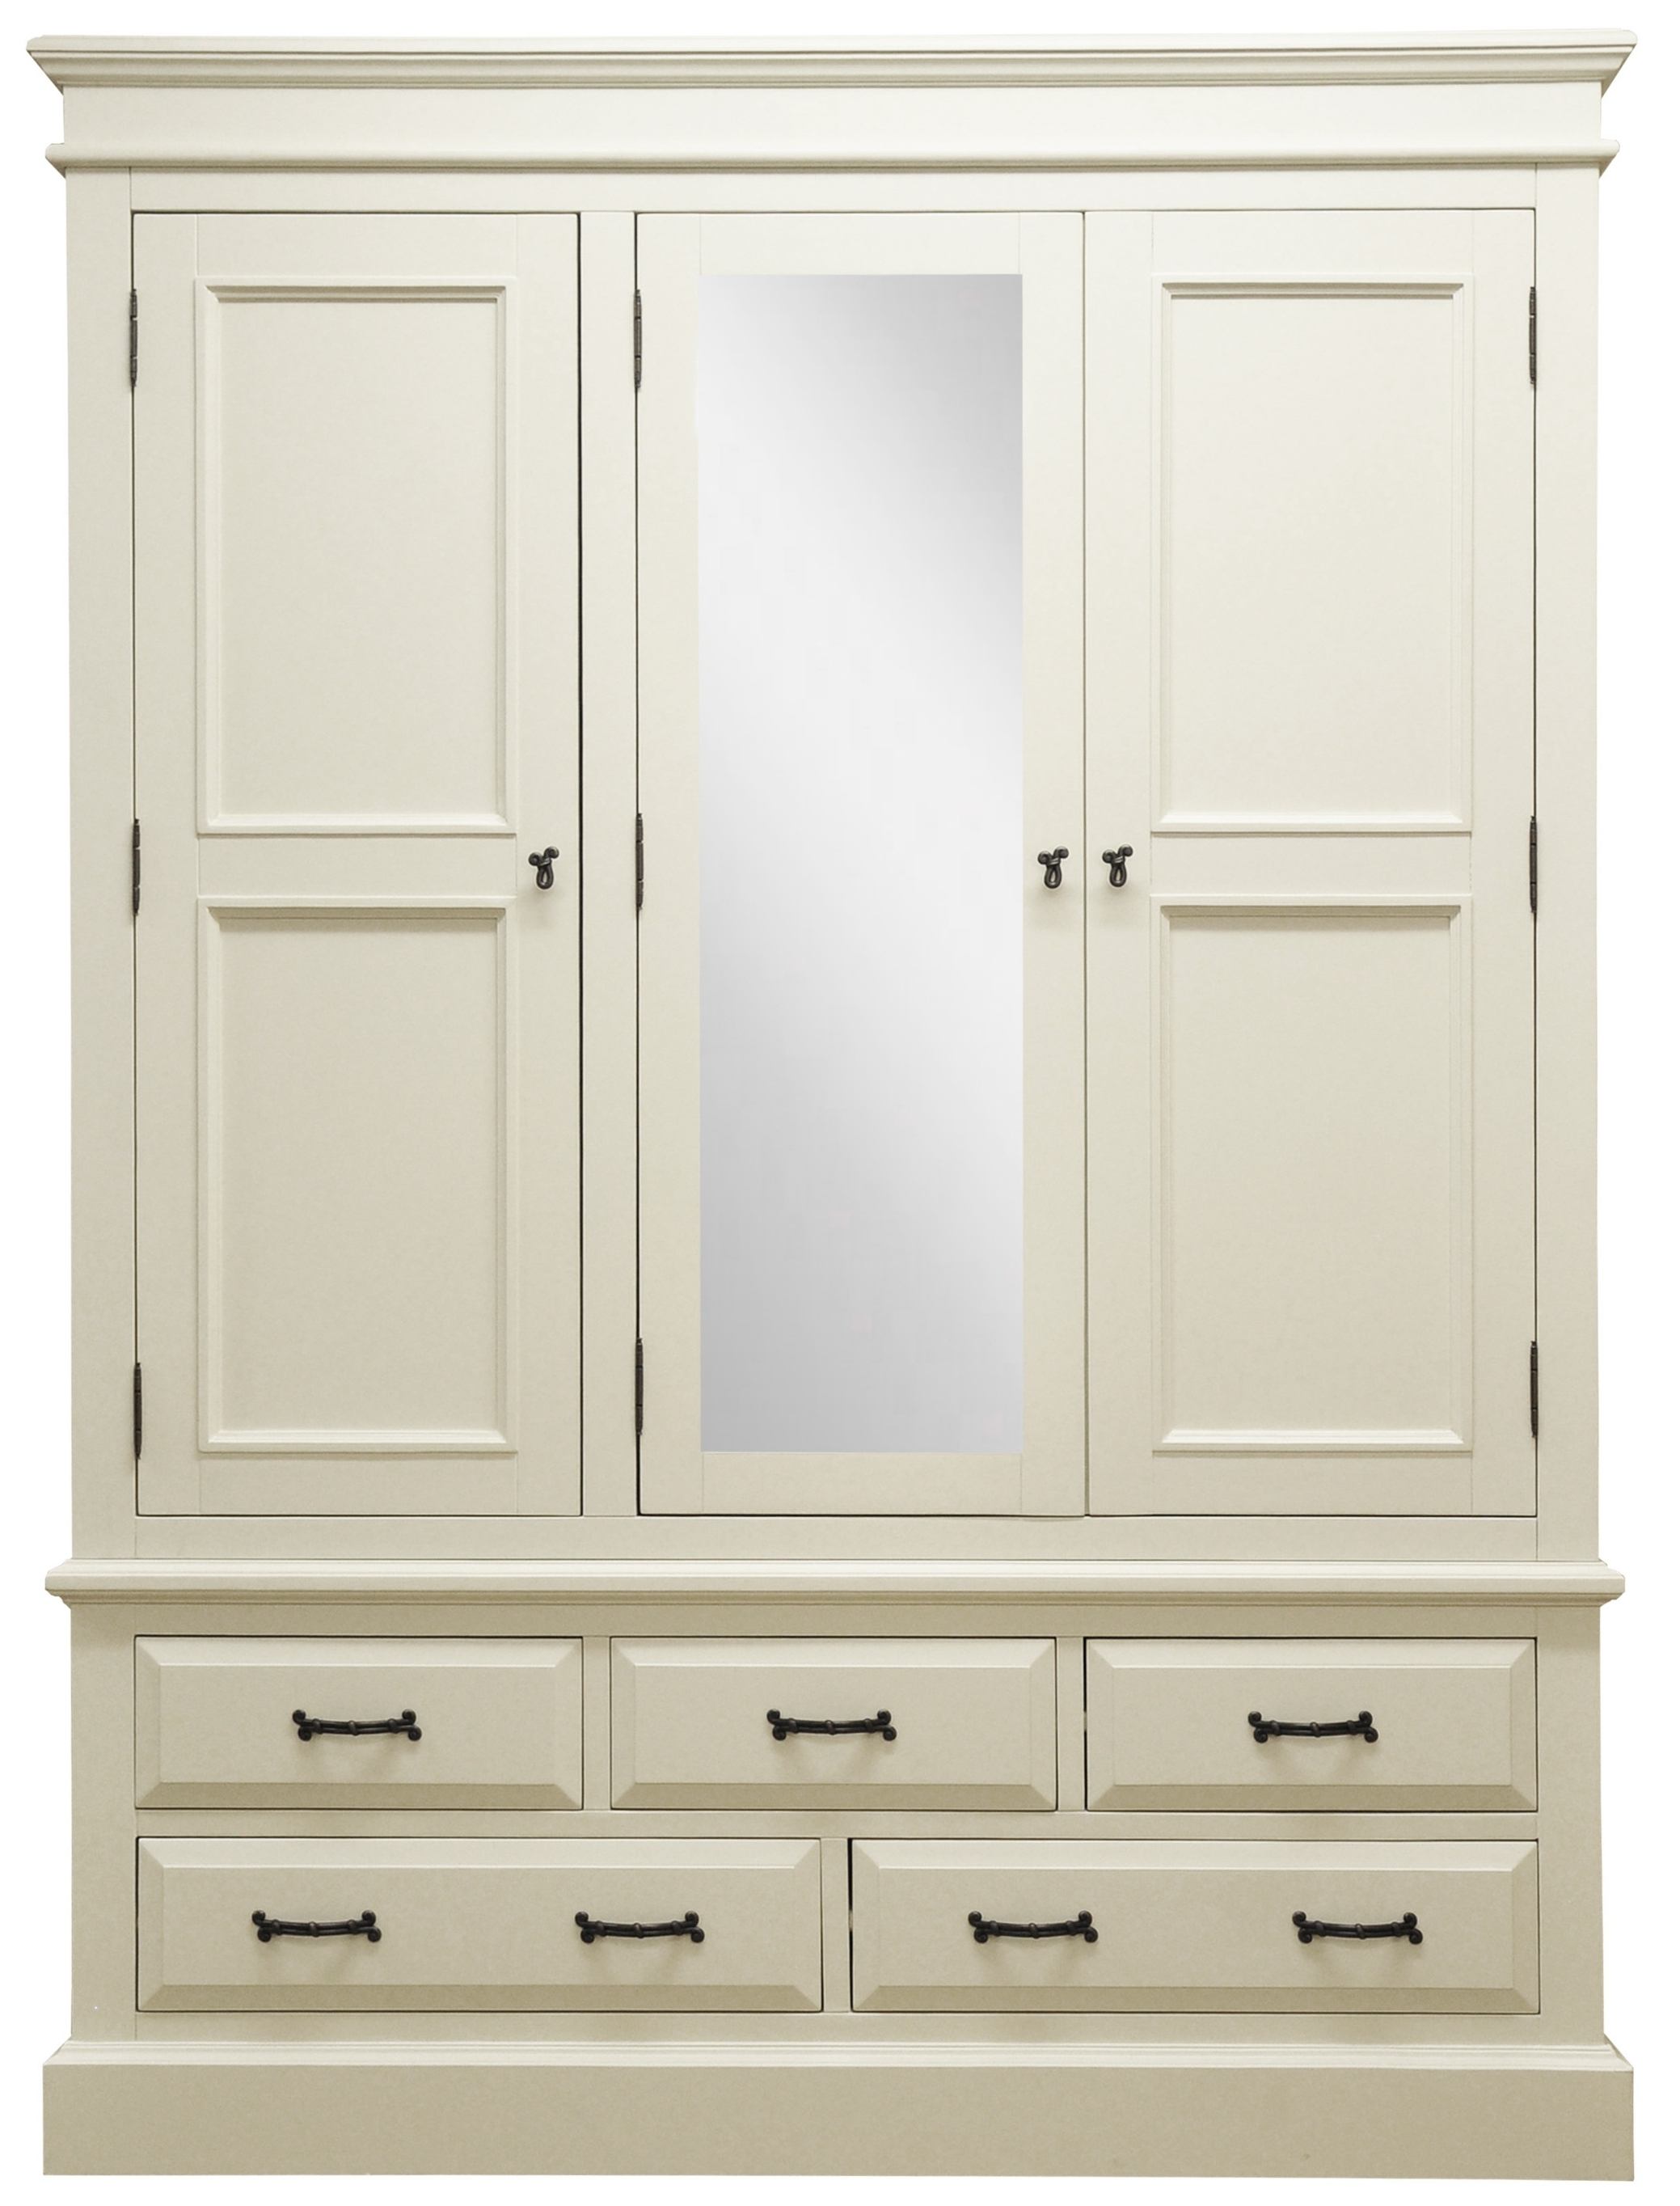 2018 Wardrobes : Henleaze 5 Drawer Painted Wardrobe With Mirrorhenleaze Throughout Painted Triple Wardrobes (View 1 of 15)